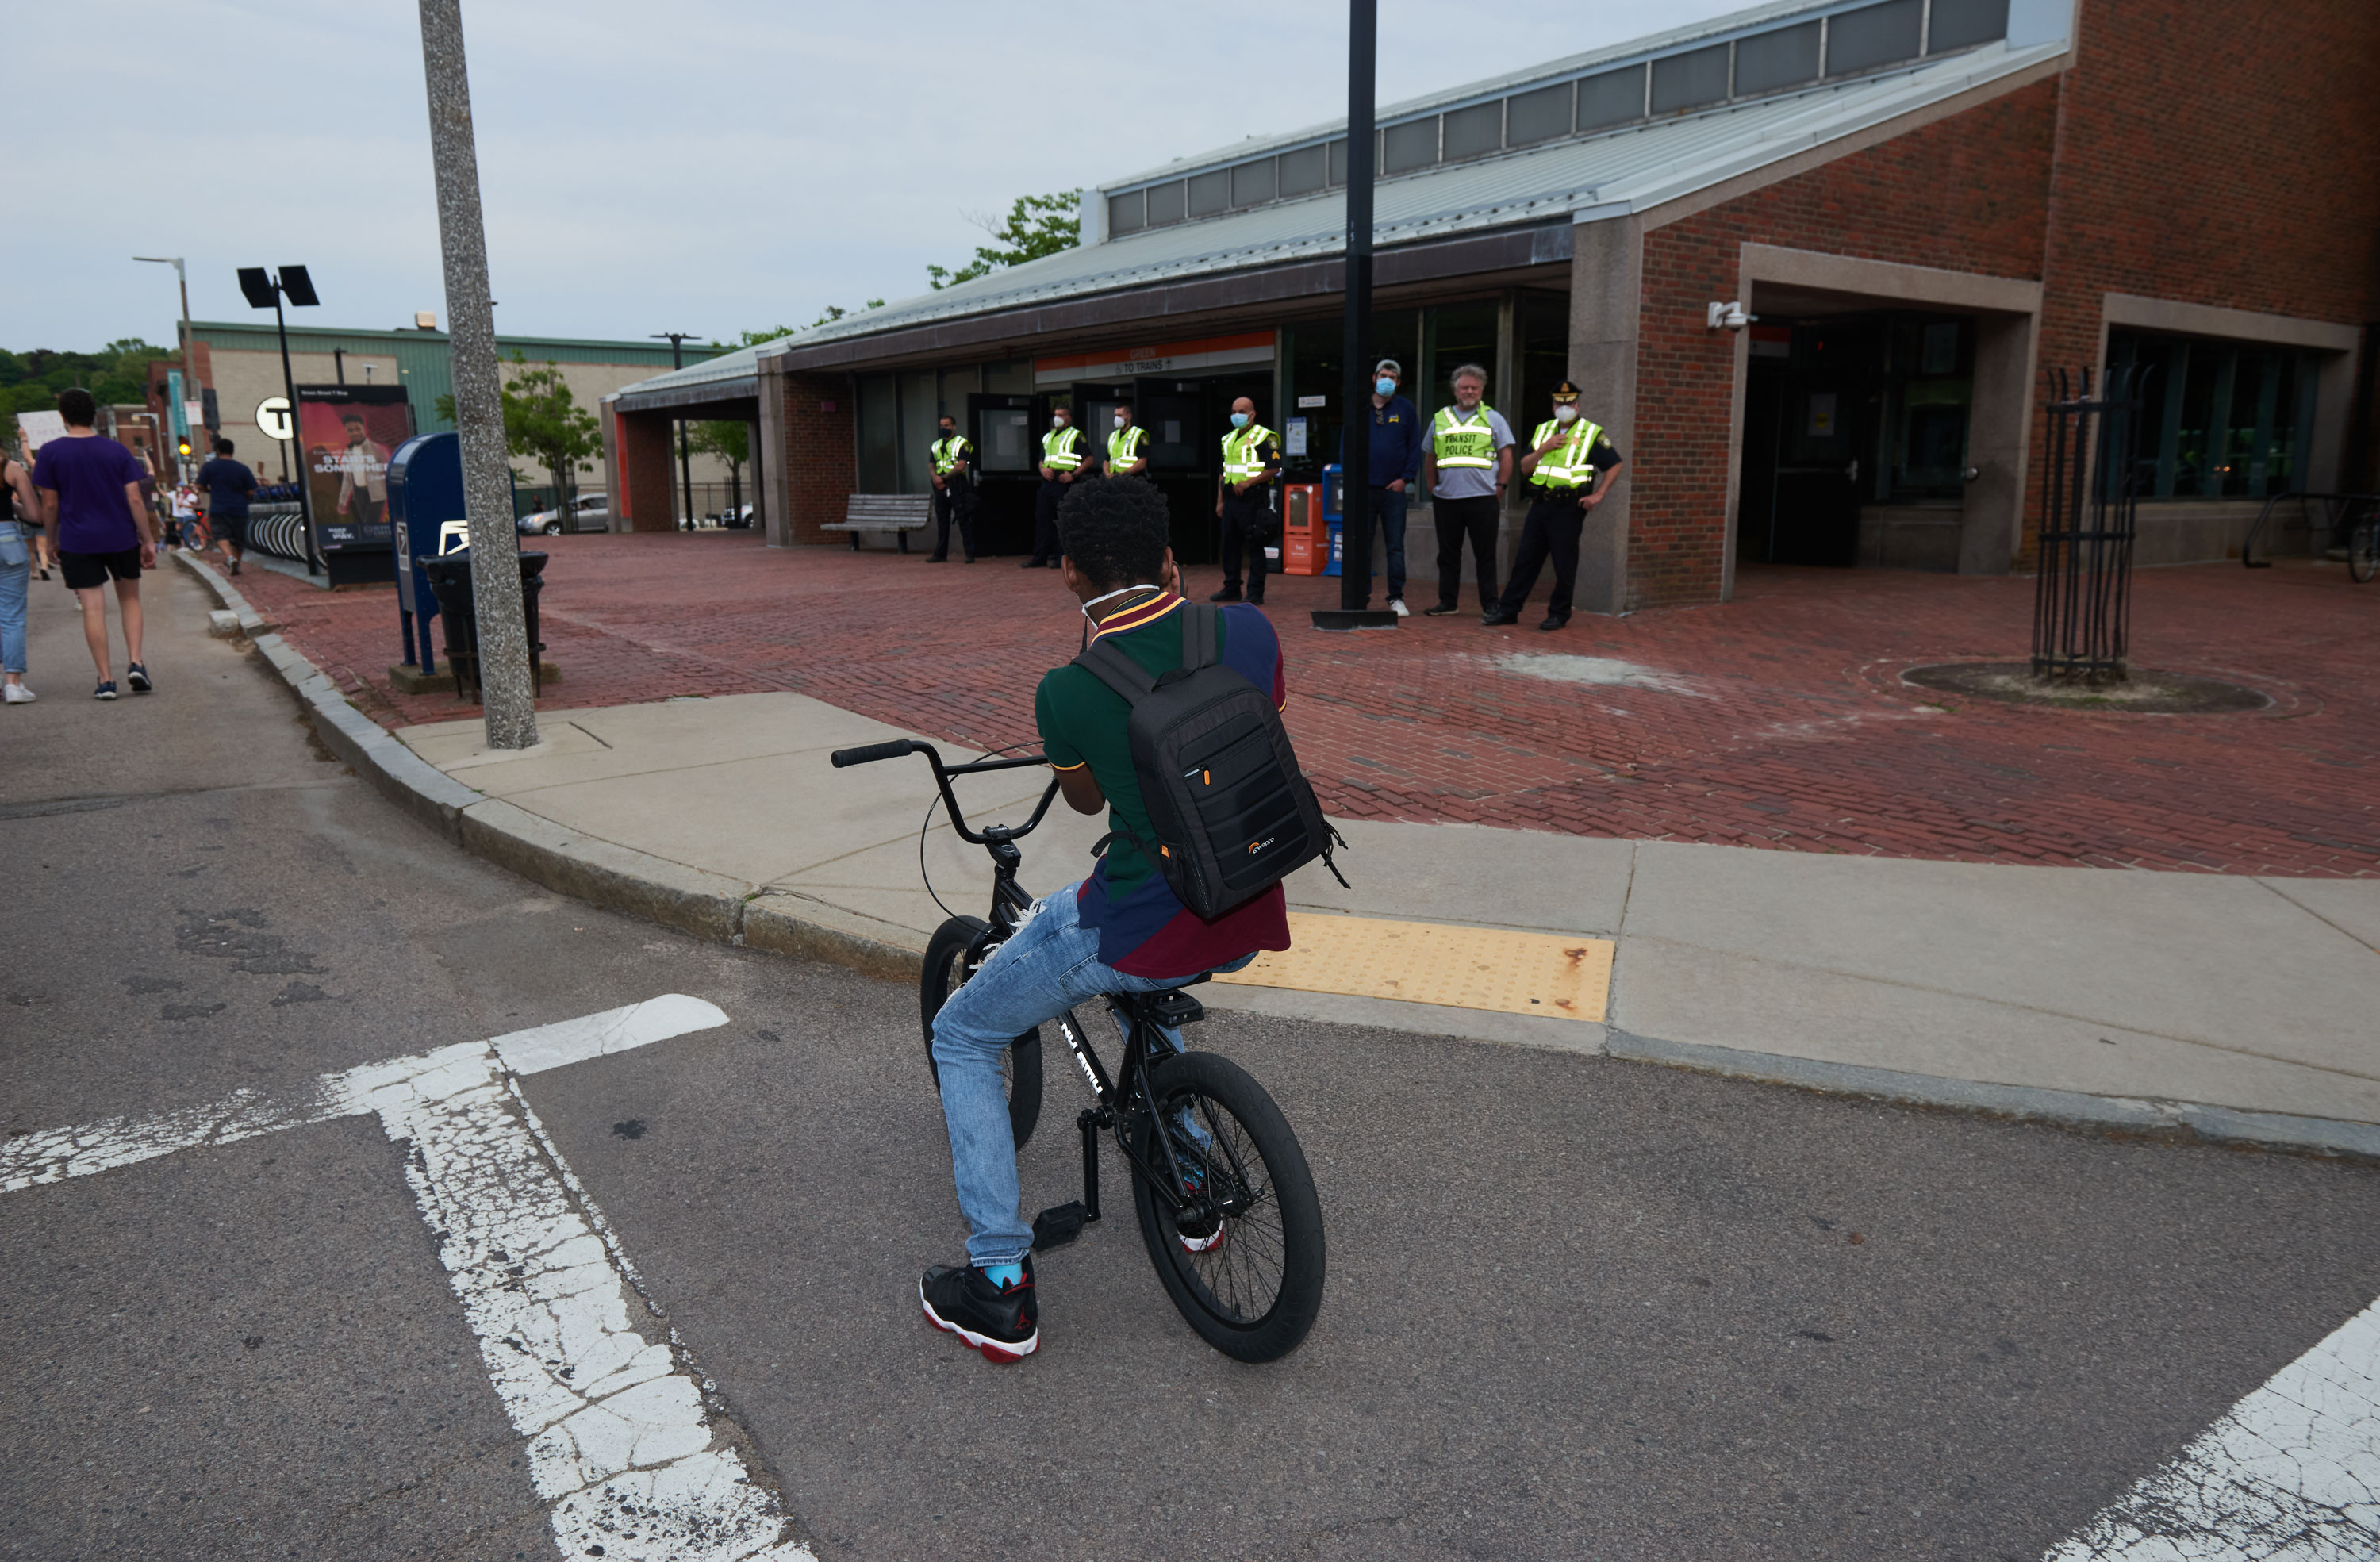 photograph of a young boy on a BMX bike photographing the police outside an MBTA station in Boston